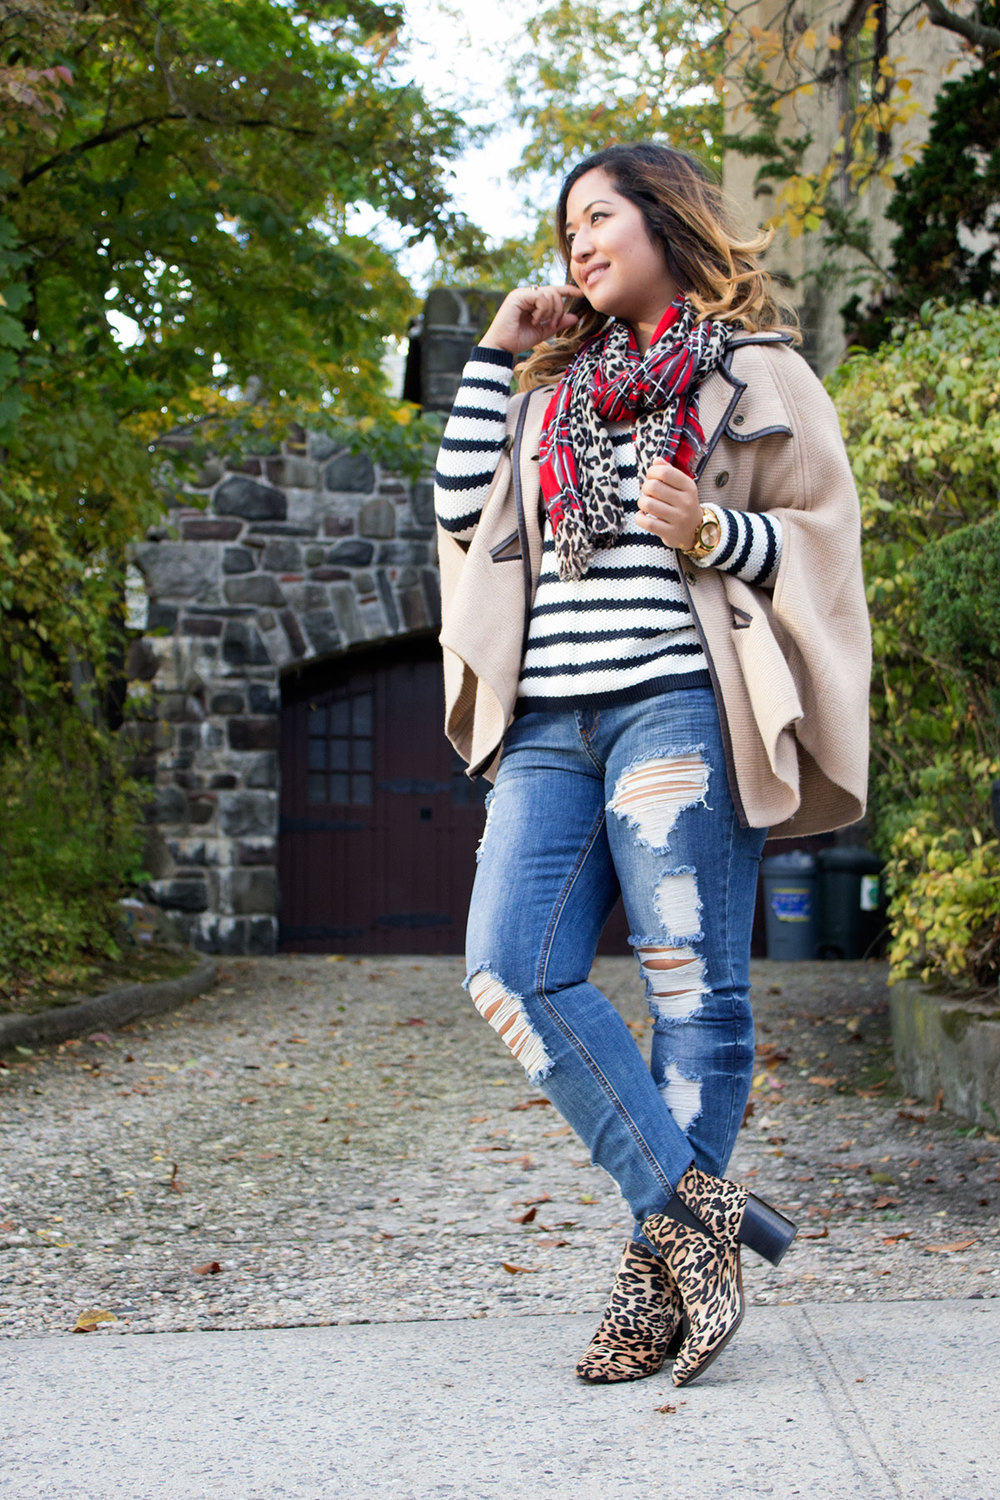 Cape, stripes, plaid, & cheetah www.krityshrestha.com